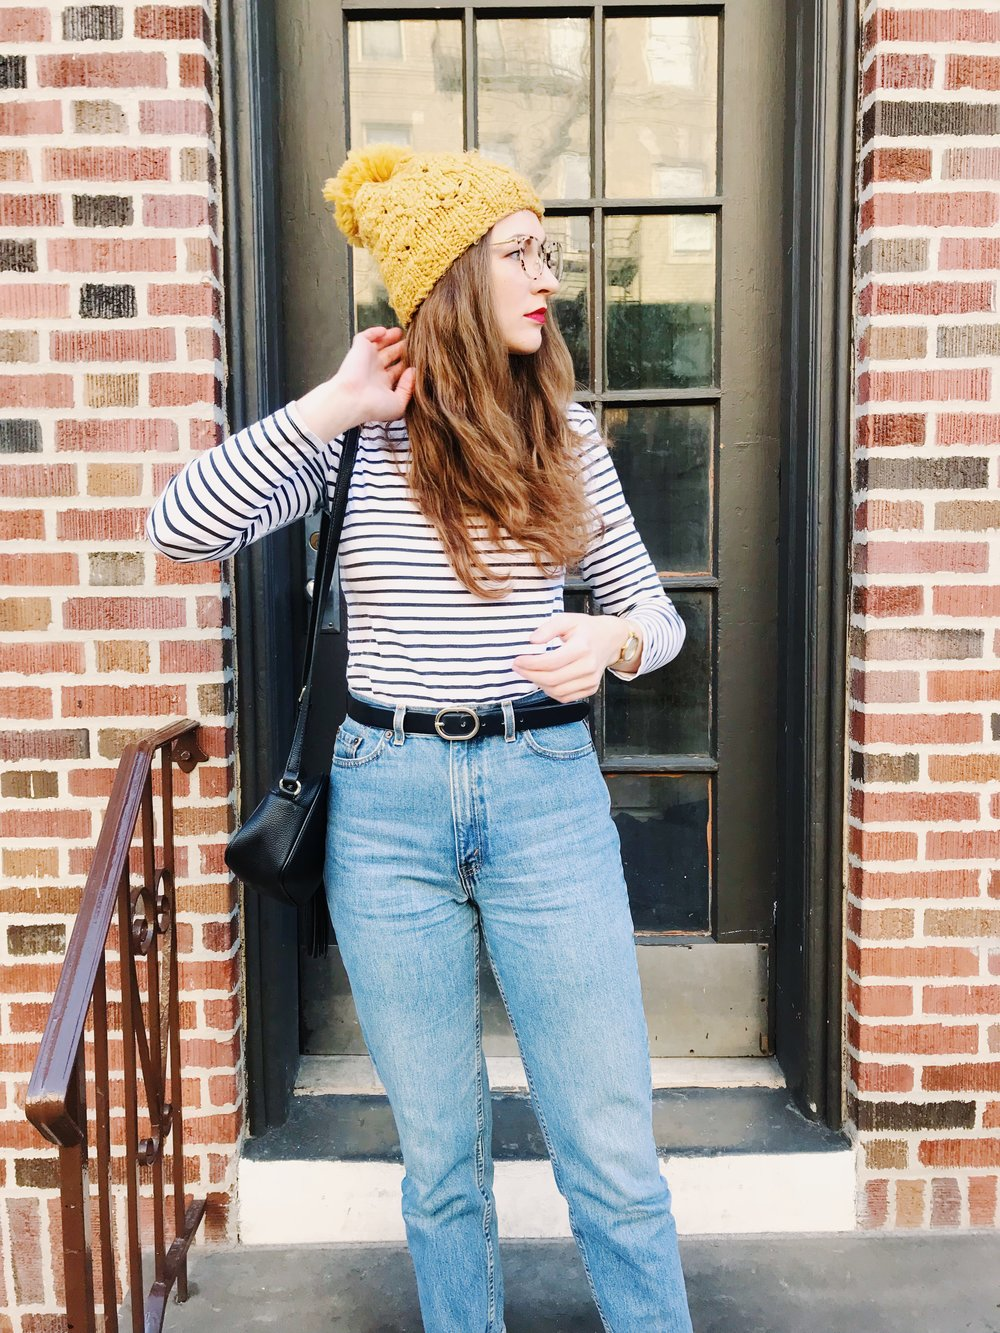 similar hat   here  from forever 21! similar jeans   here   (this is funny because i paid the exact same amount, except i got mine from a vintage store and they smell like cats.